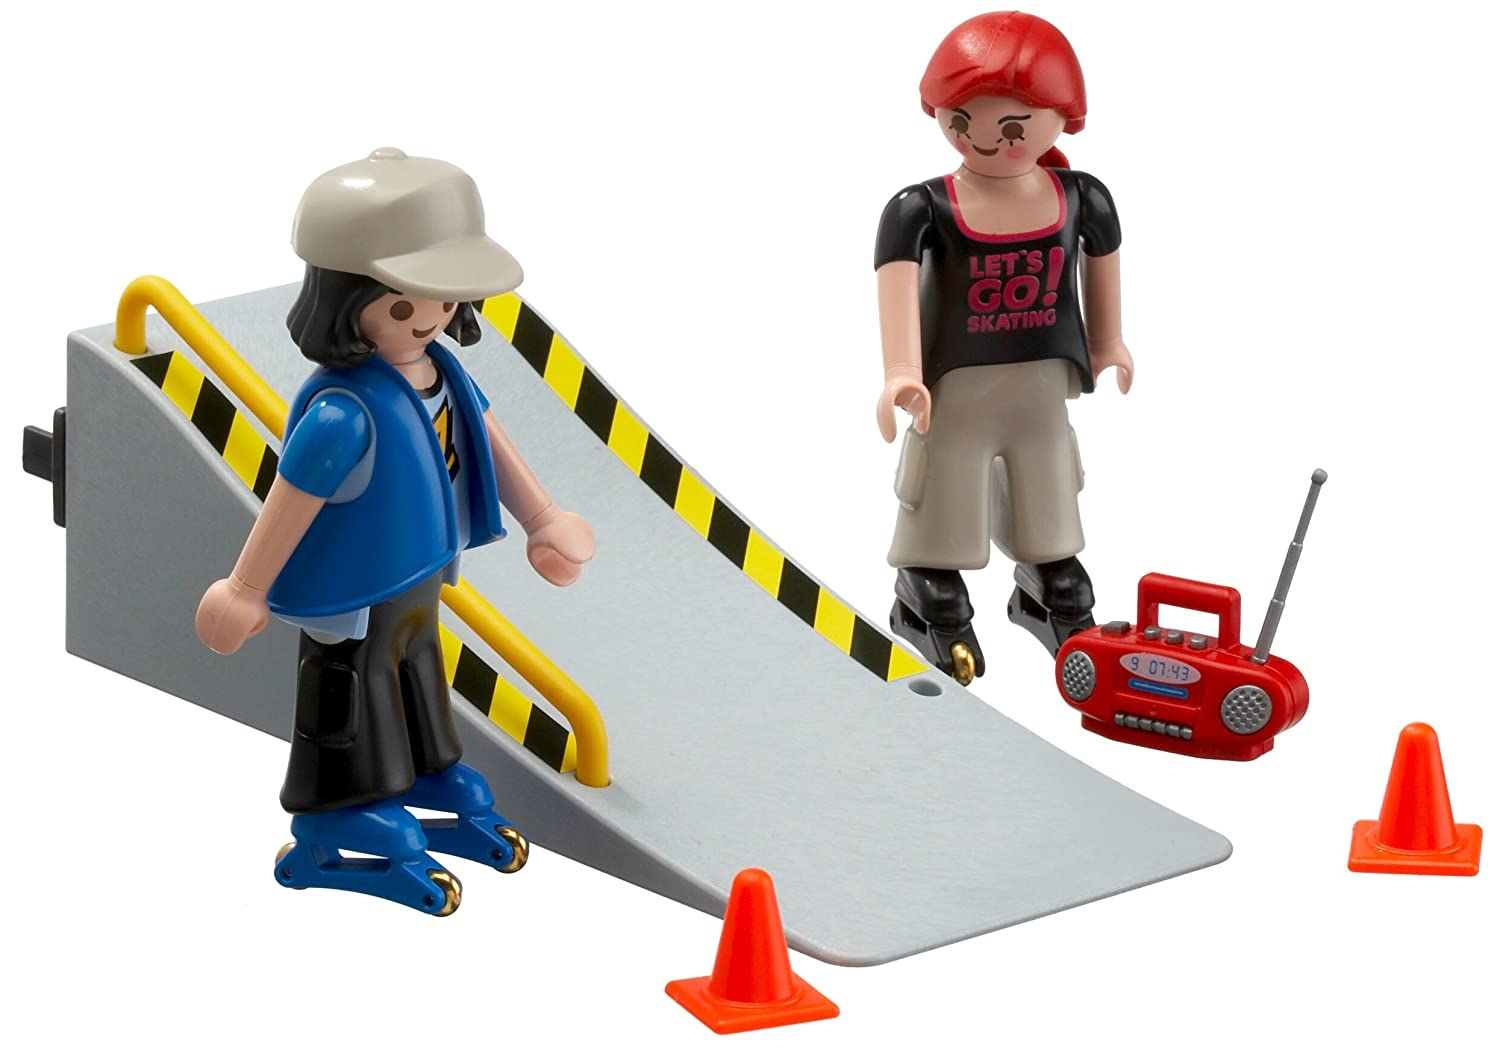 Playmobil 4415: Skaters with Ramp [Toy]: Amazon.co.uk: Toys & Games